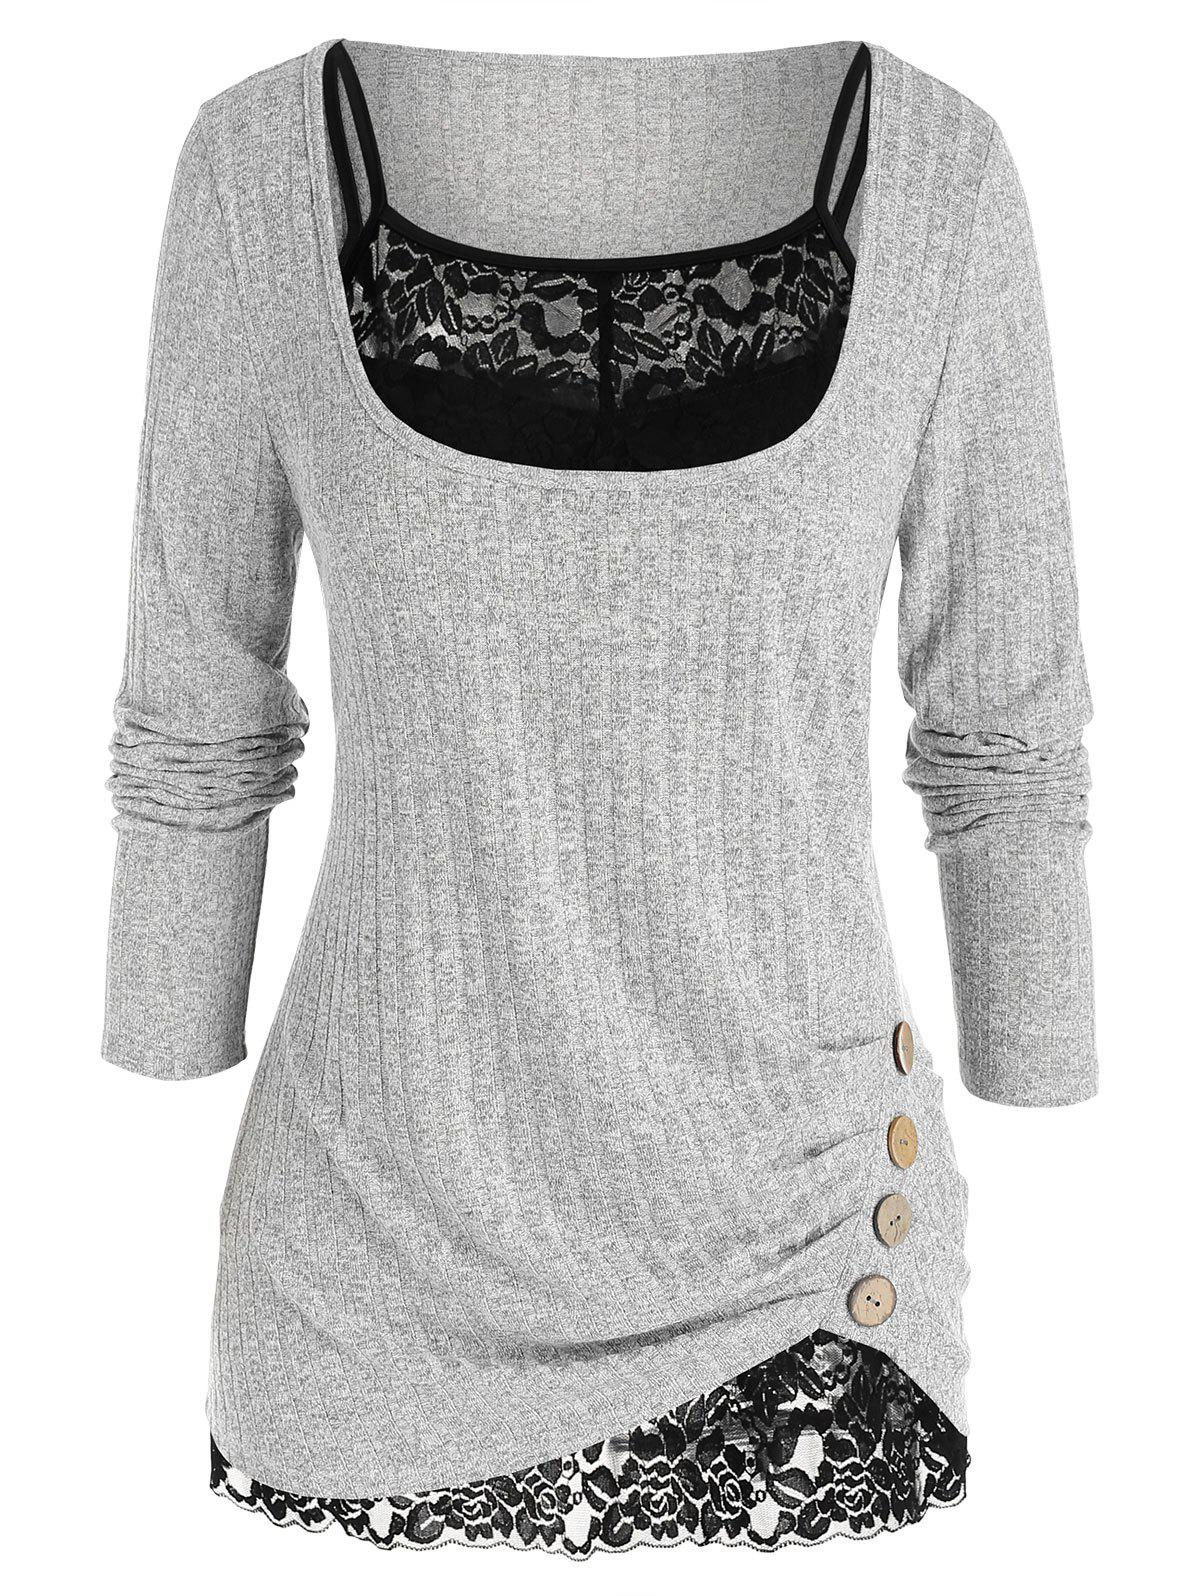 Plus Size Ruched U Neck Sweater with Lace Cami Top Set - LIGHT GRAY 4X